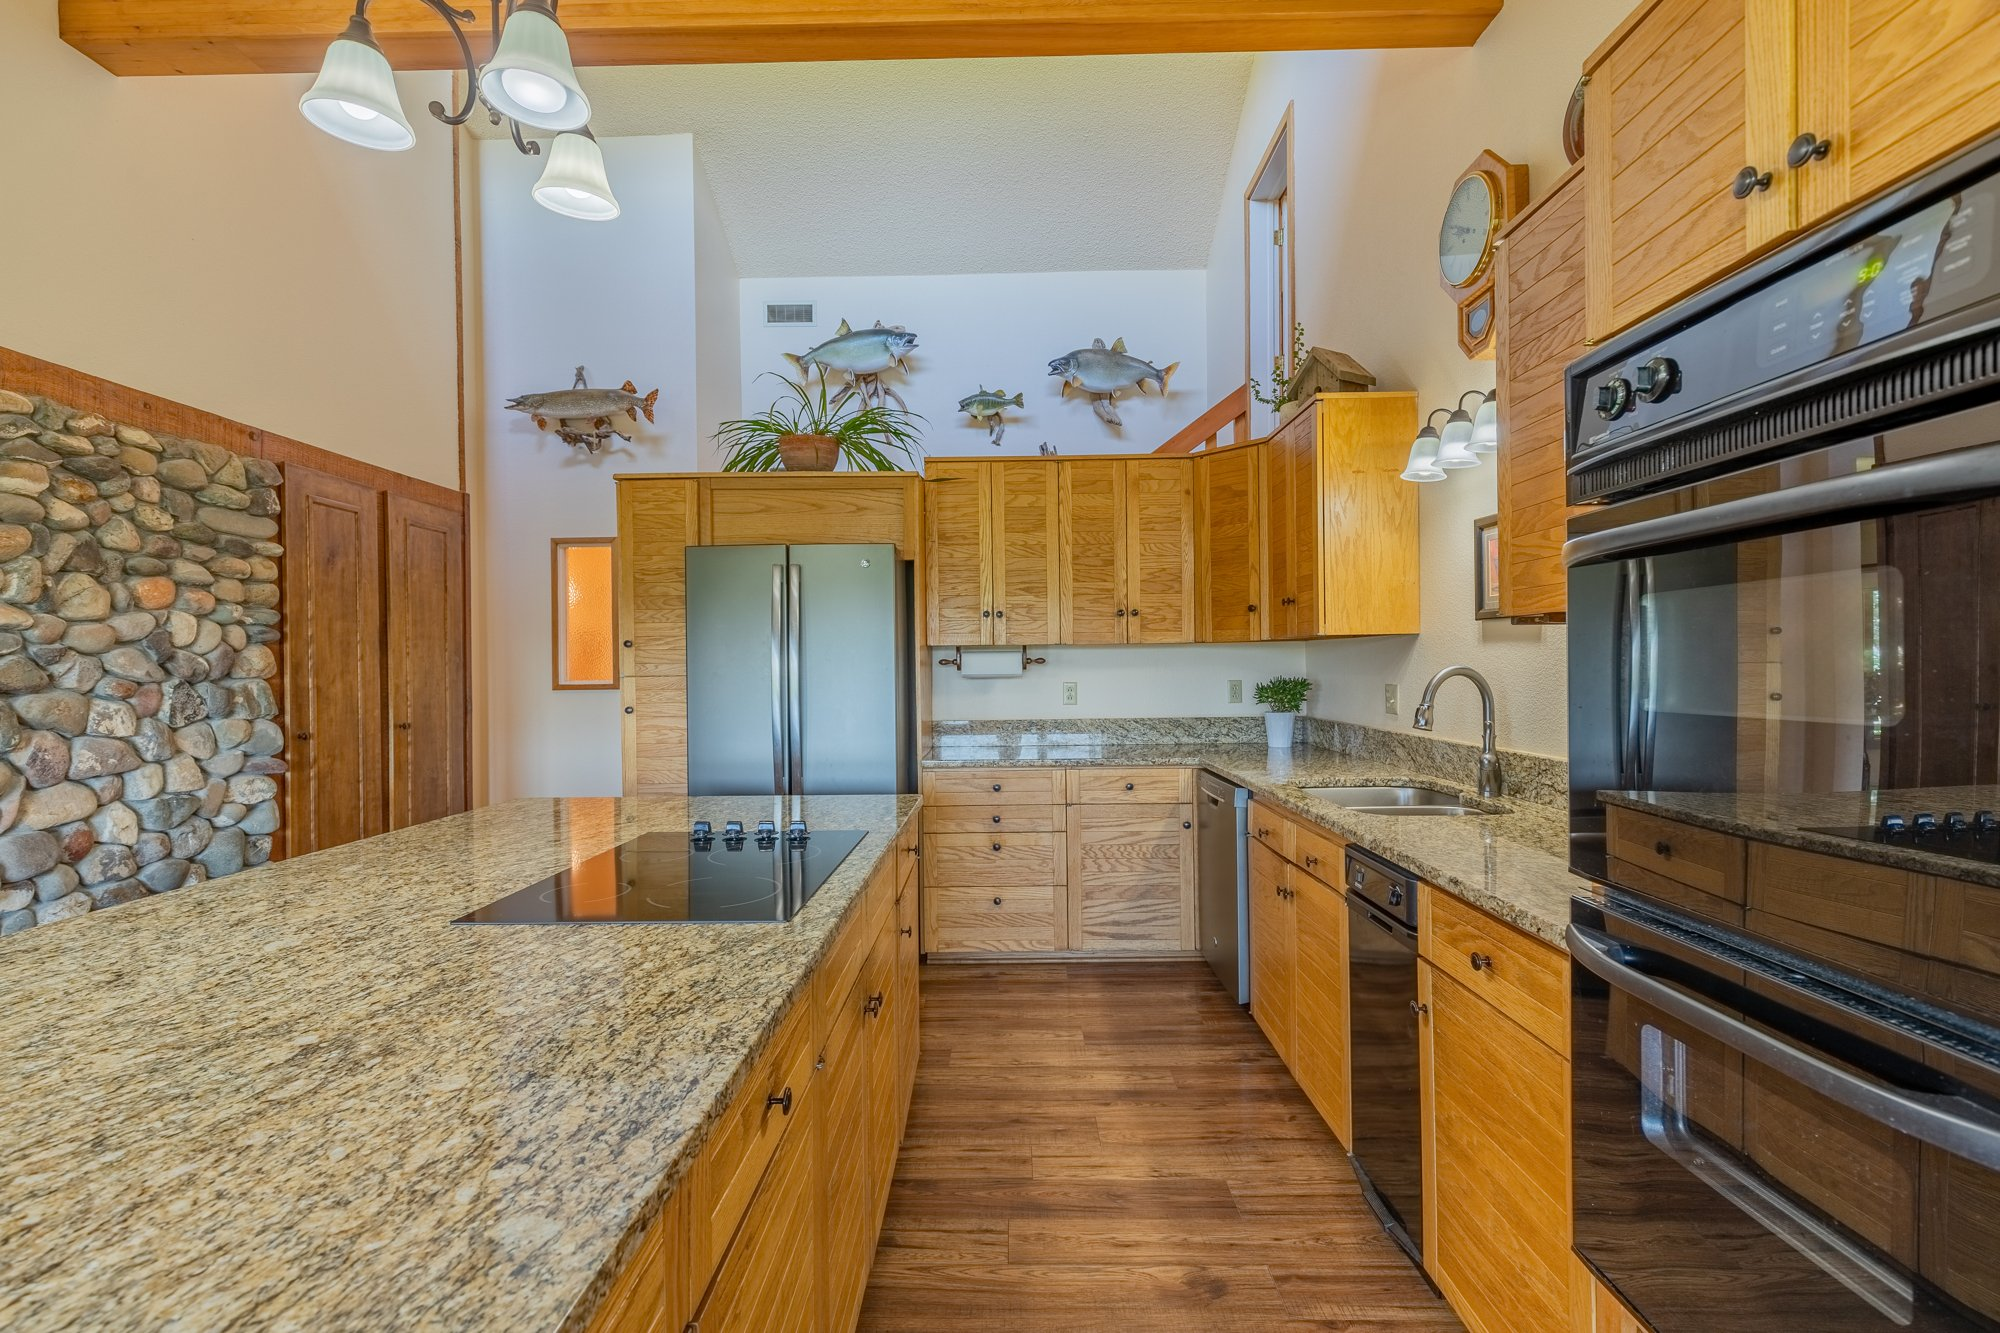 Kitchen with Granite Counter Tops - 17777 6650 Rd Montrose, CO 81403 - Atha Team Country Real Estate